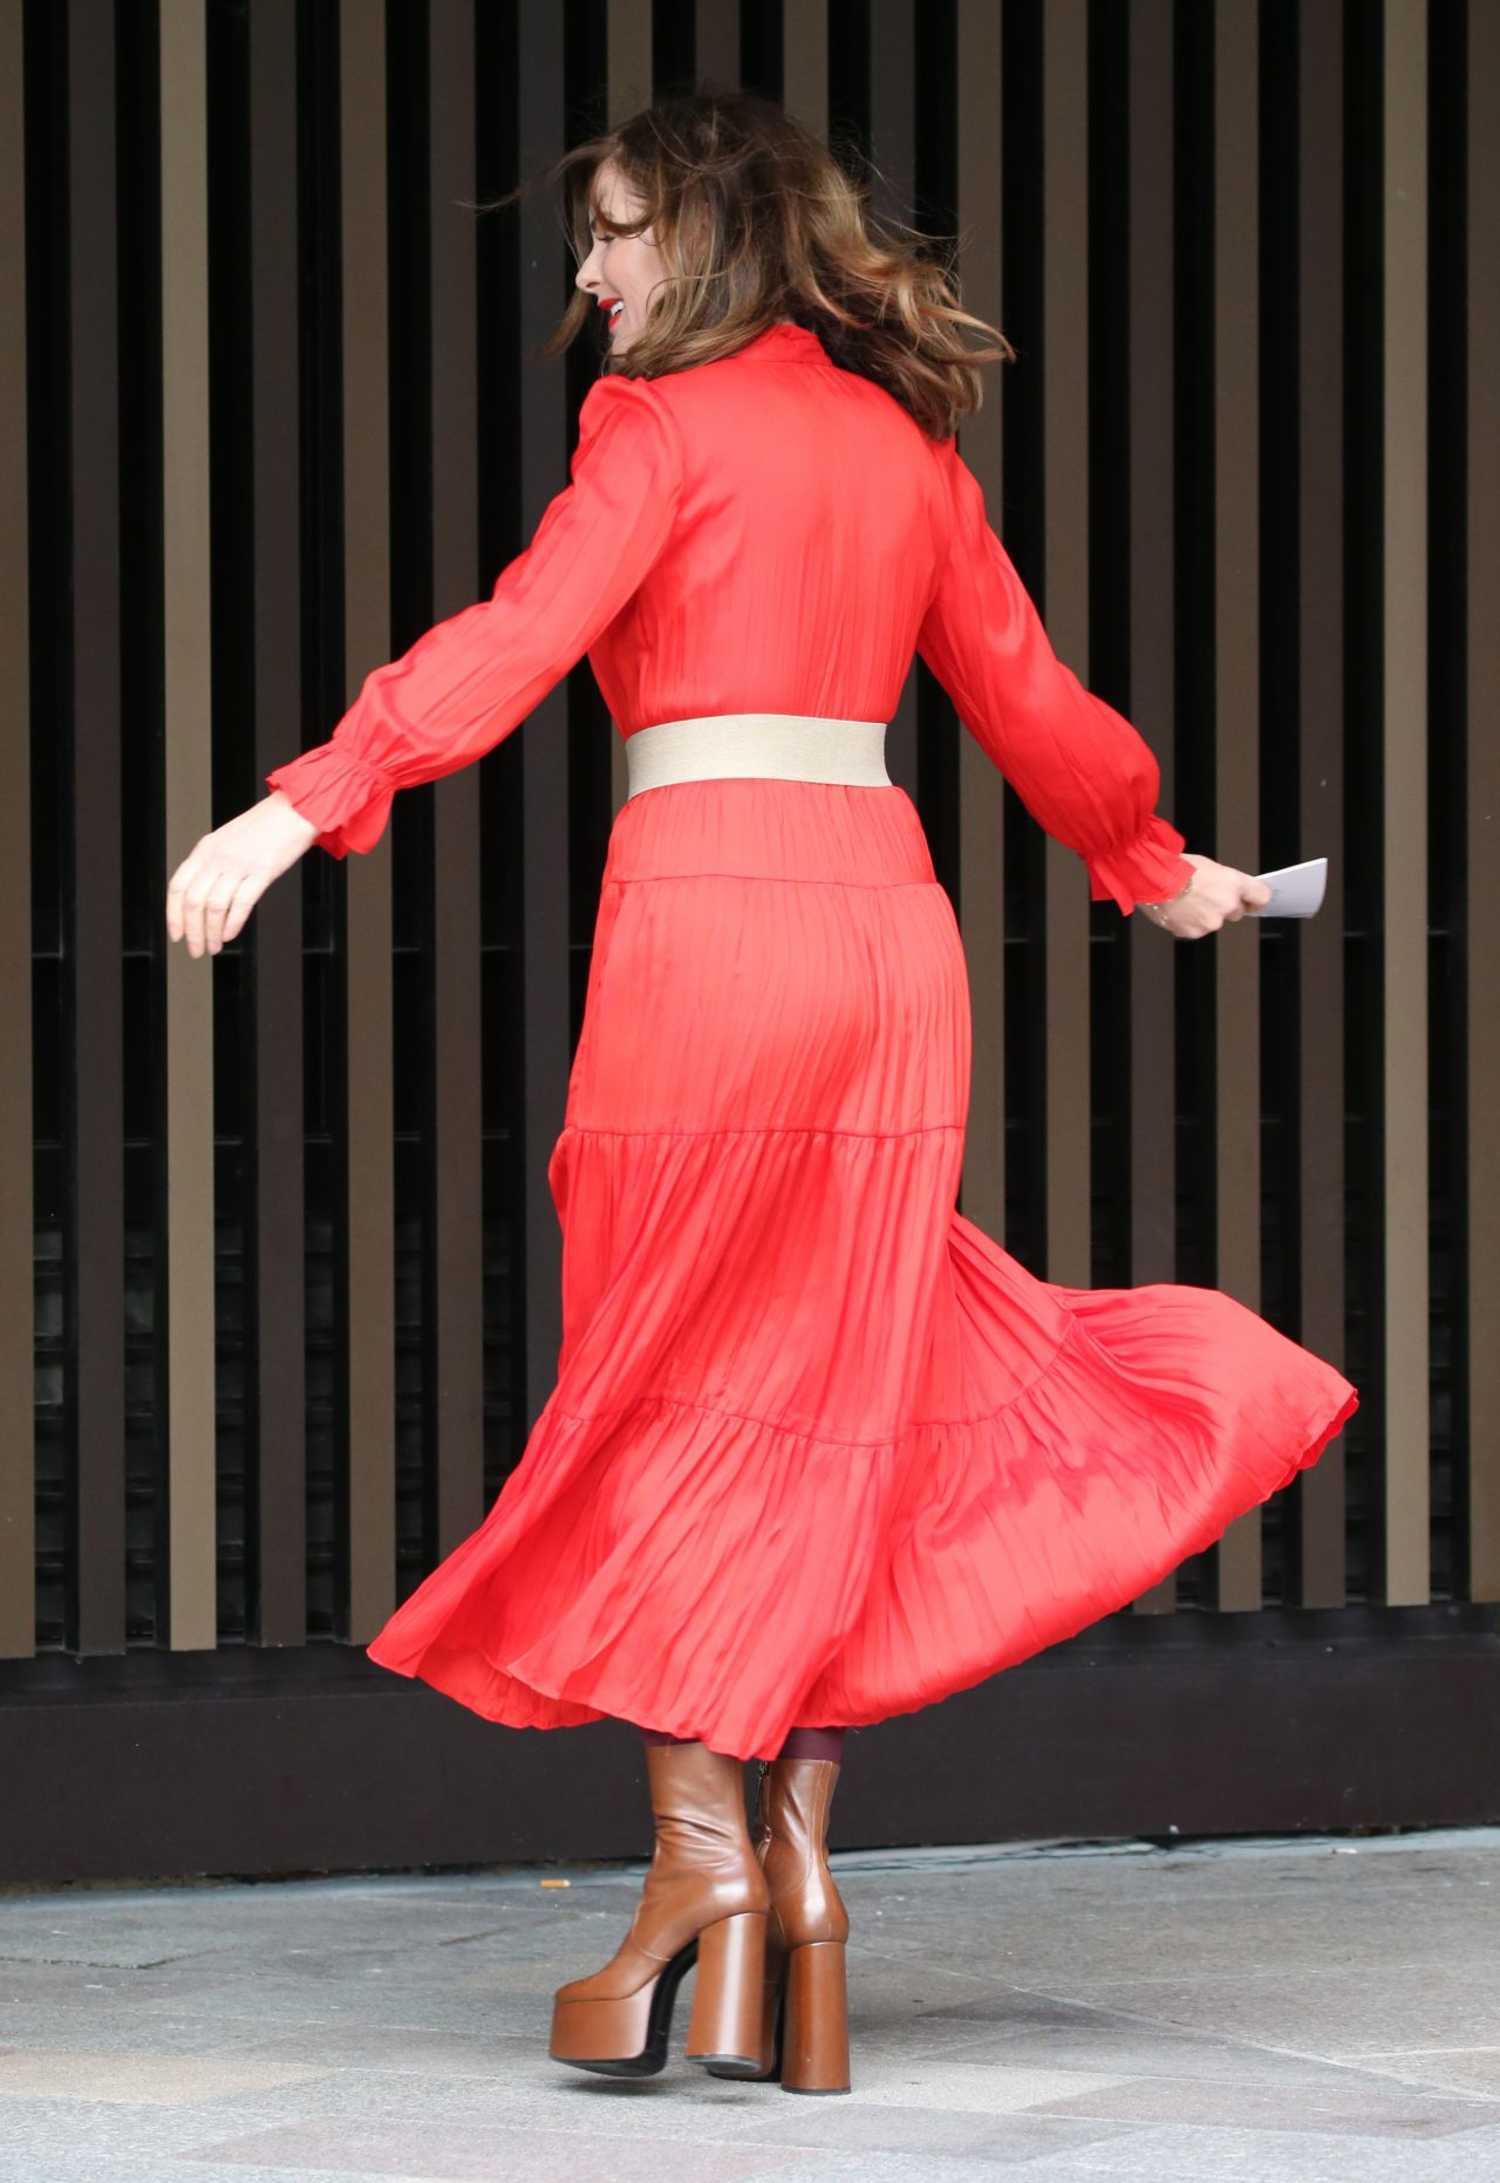 Trinny Woodall in a Red Dress Leaves ITV Studios in London – Celeb Donut1500 x 2183